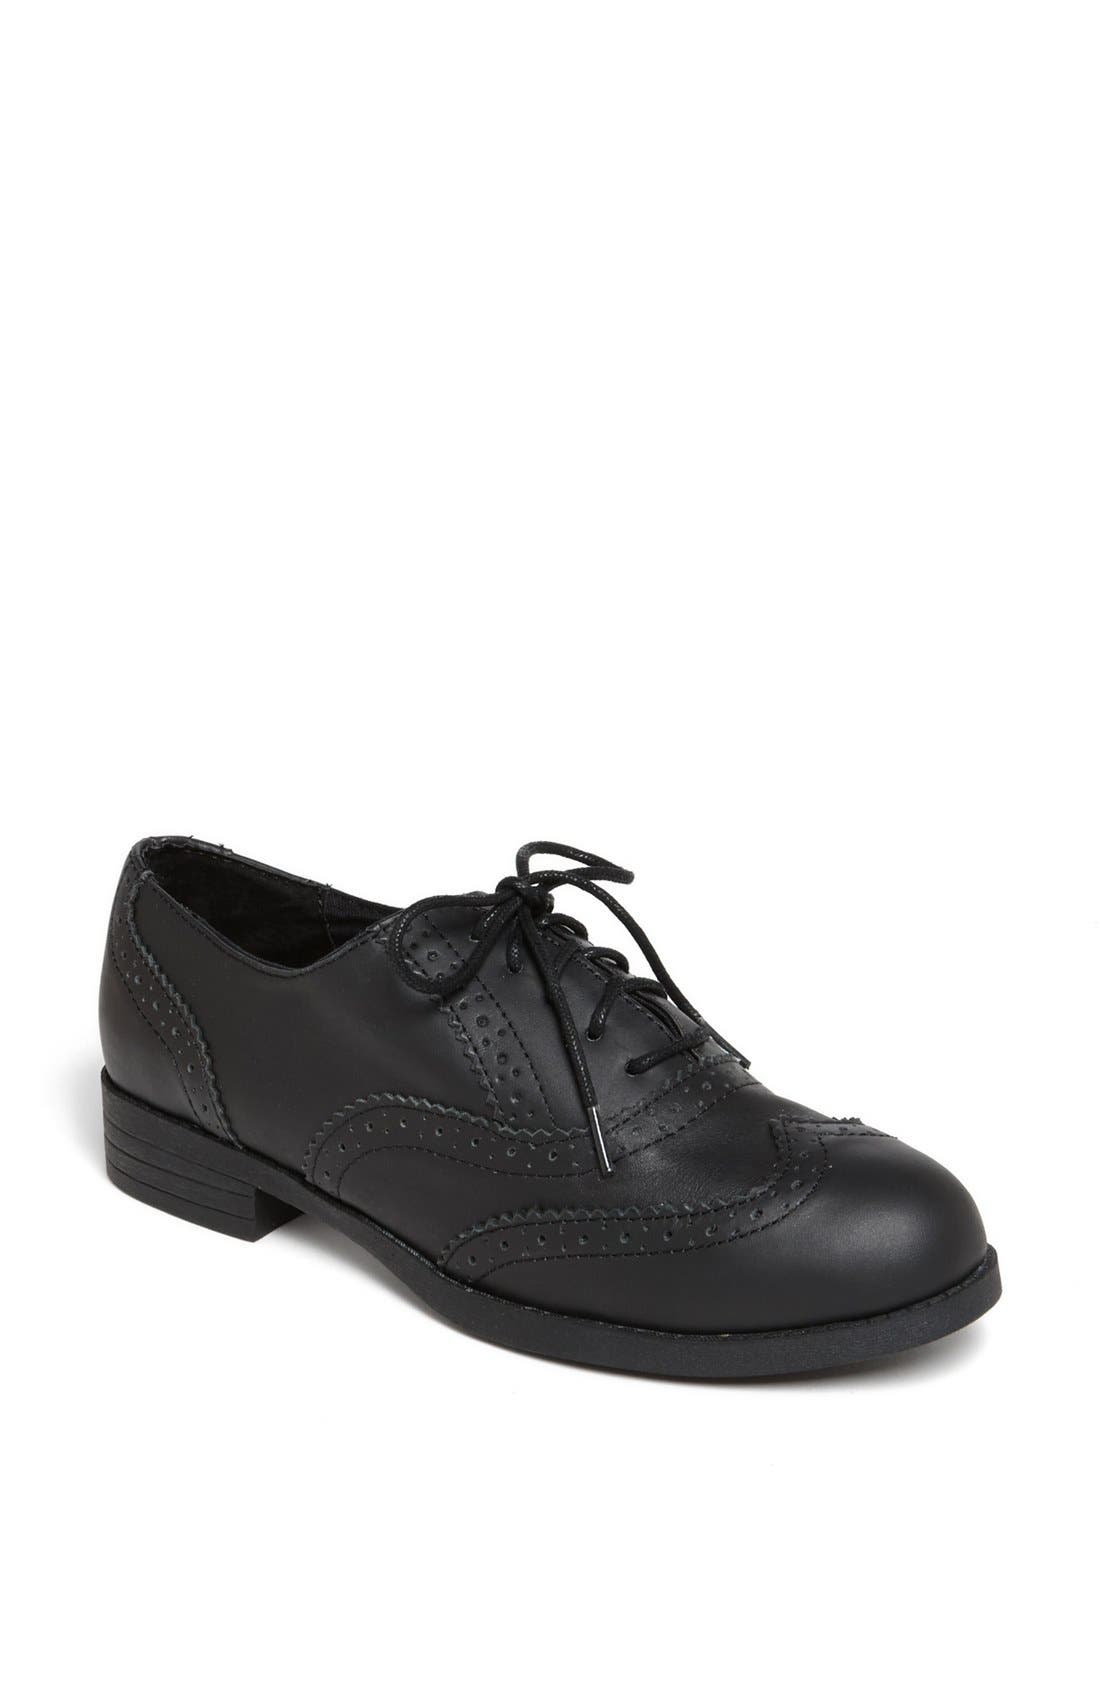 Main Image - Topshop 'Multiply' Oxford Flat